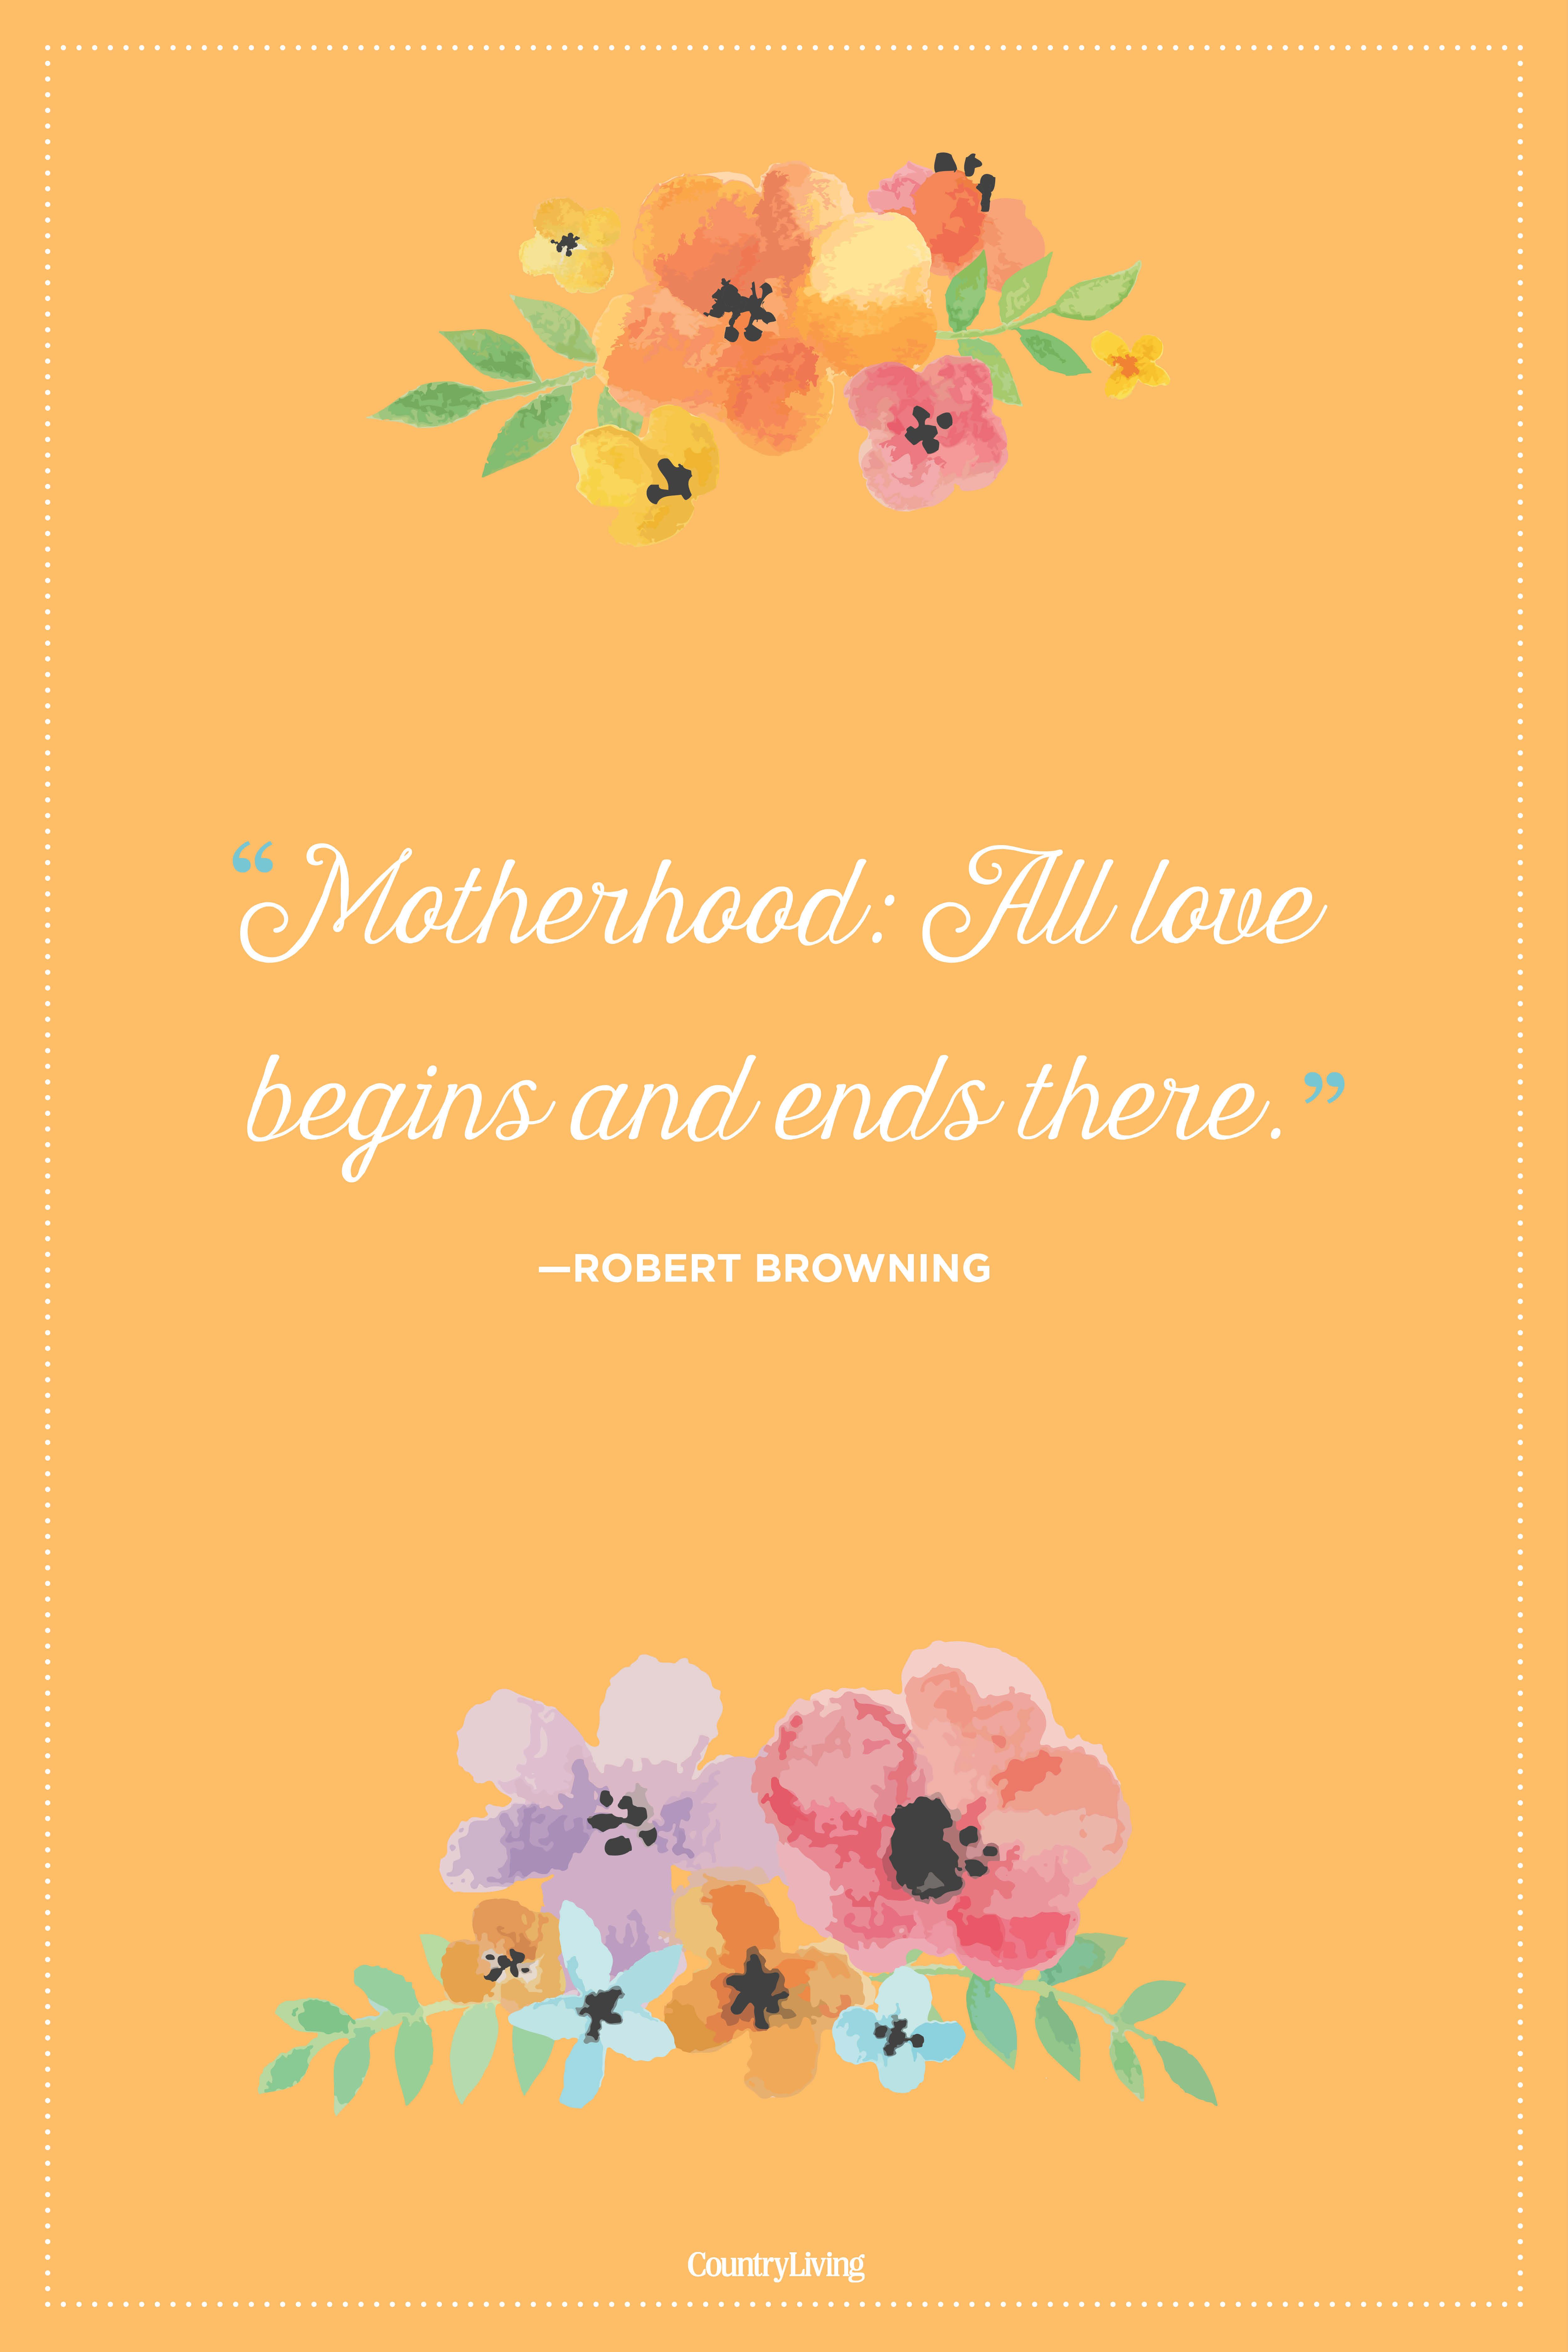 robert browning mothers day quote